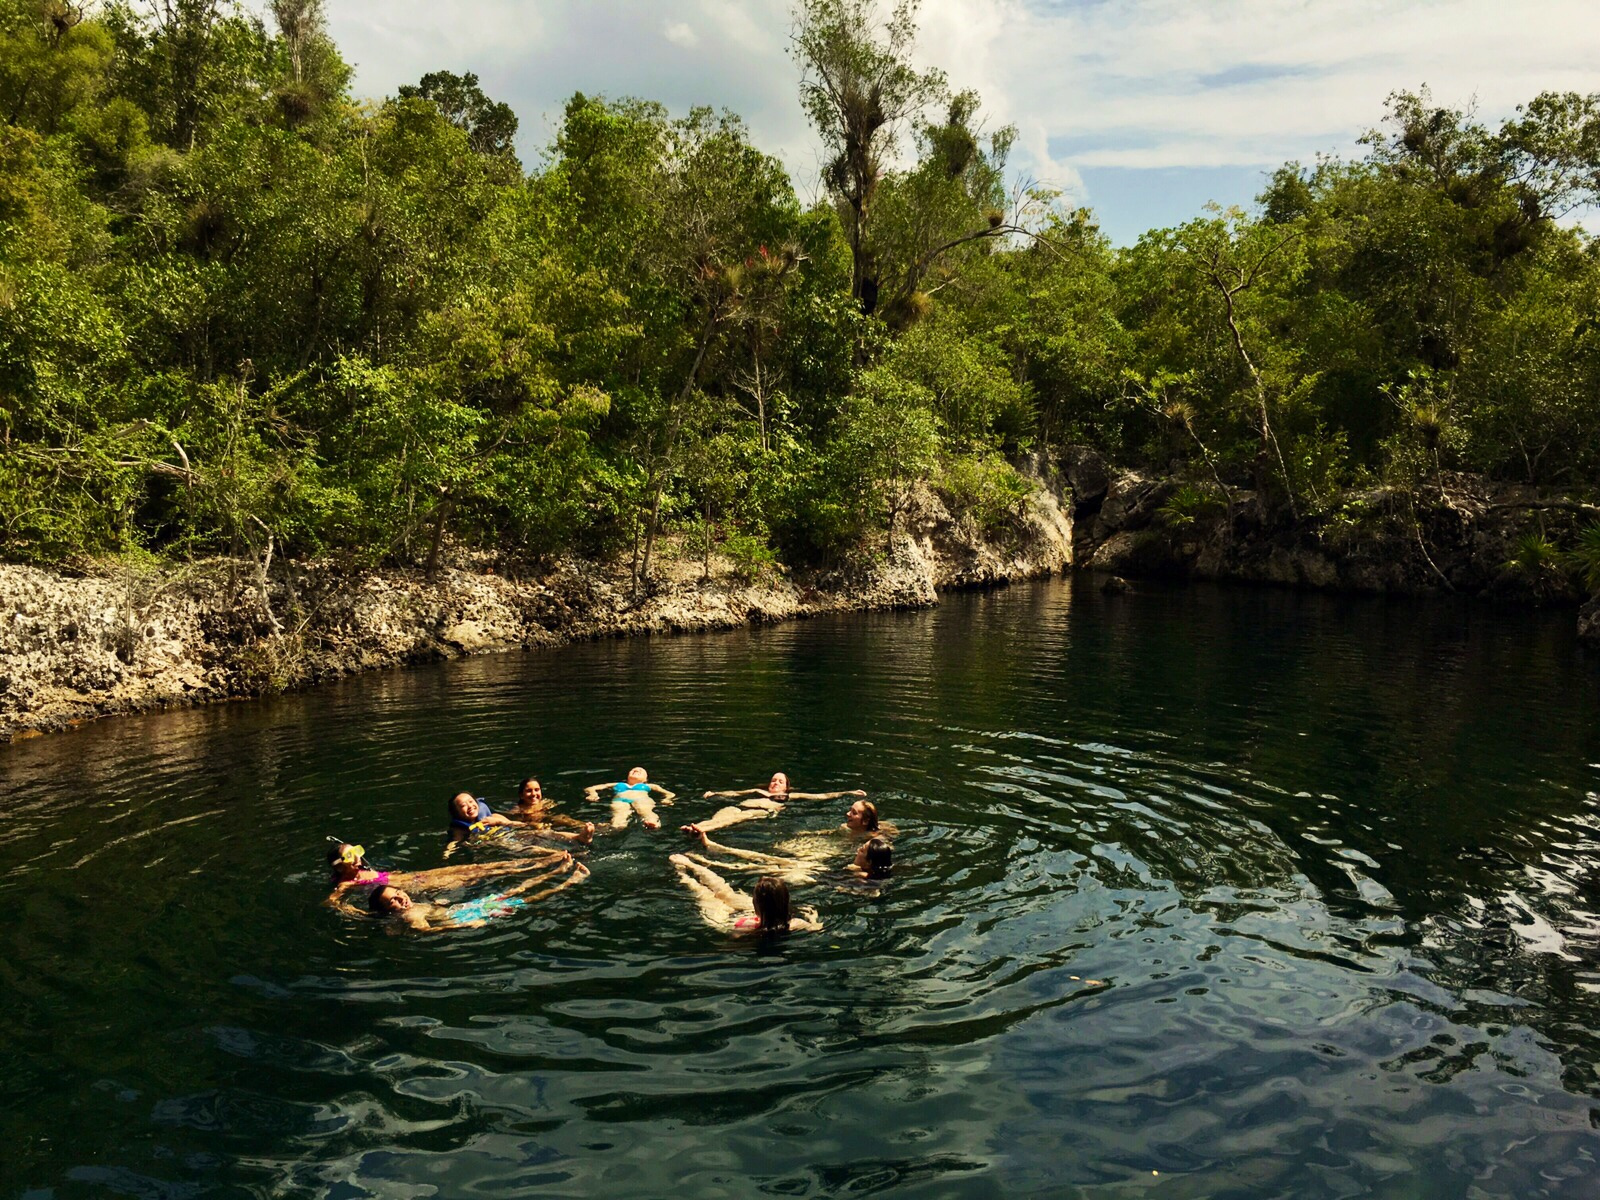 Students swimming in cenote